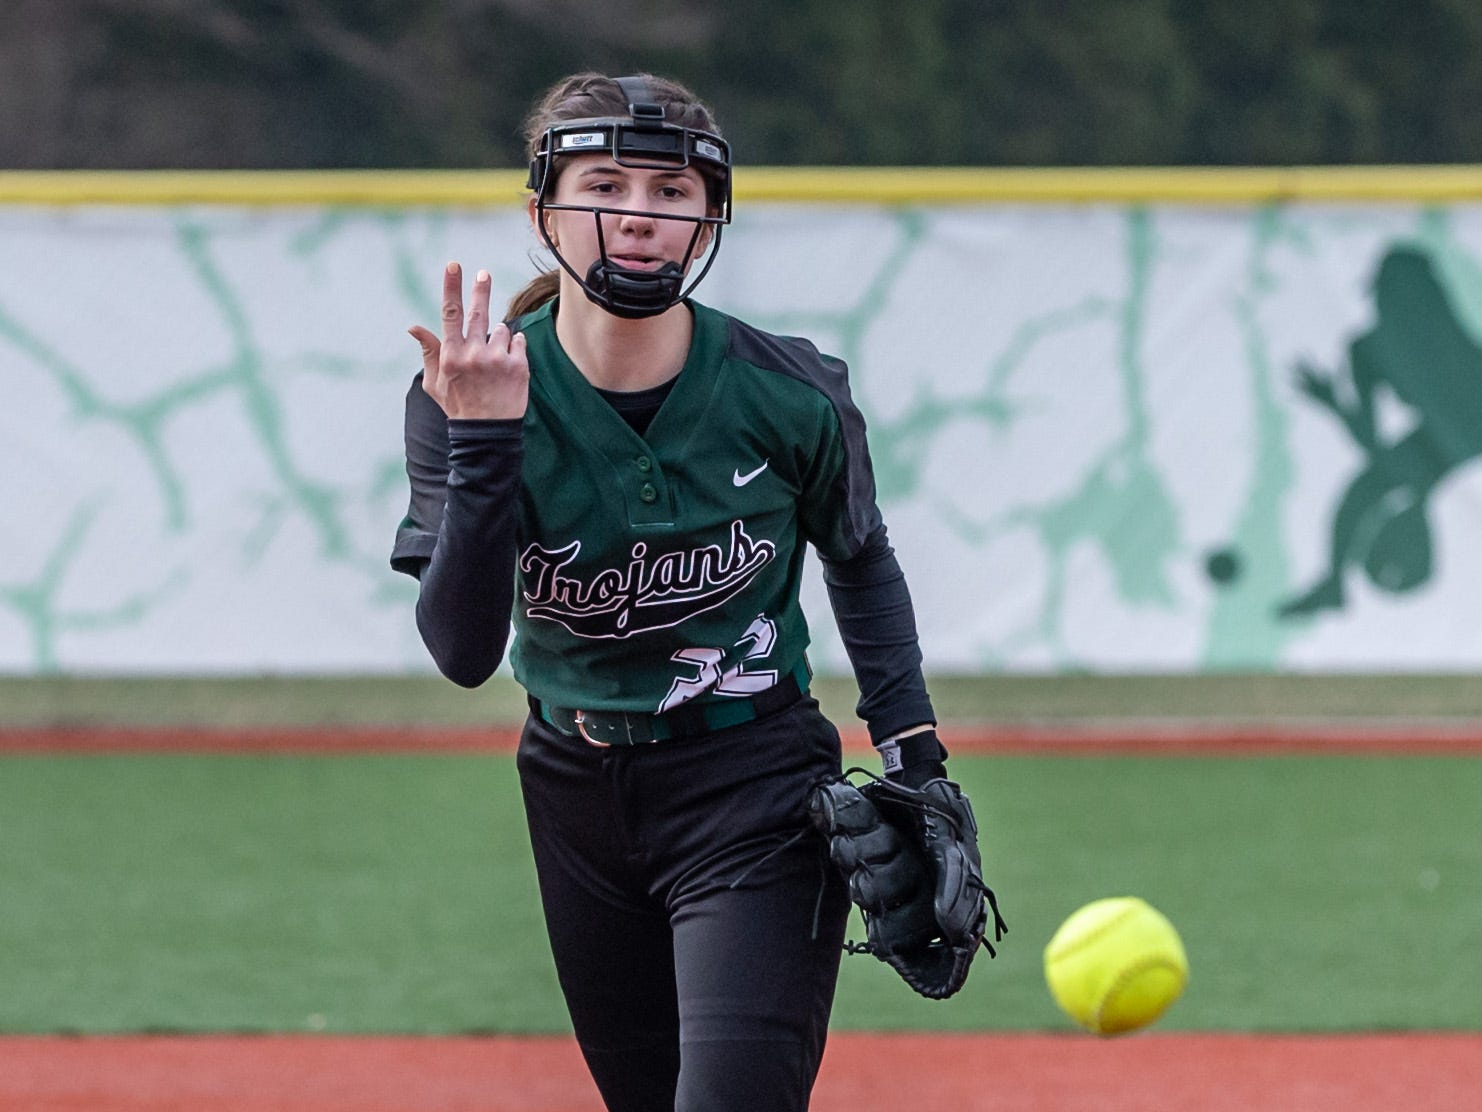 Wauwatosa West's Riley McAdams delivers a pitch during the game at home against DSHA on Wednesday, April 17, 2019.